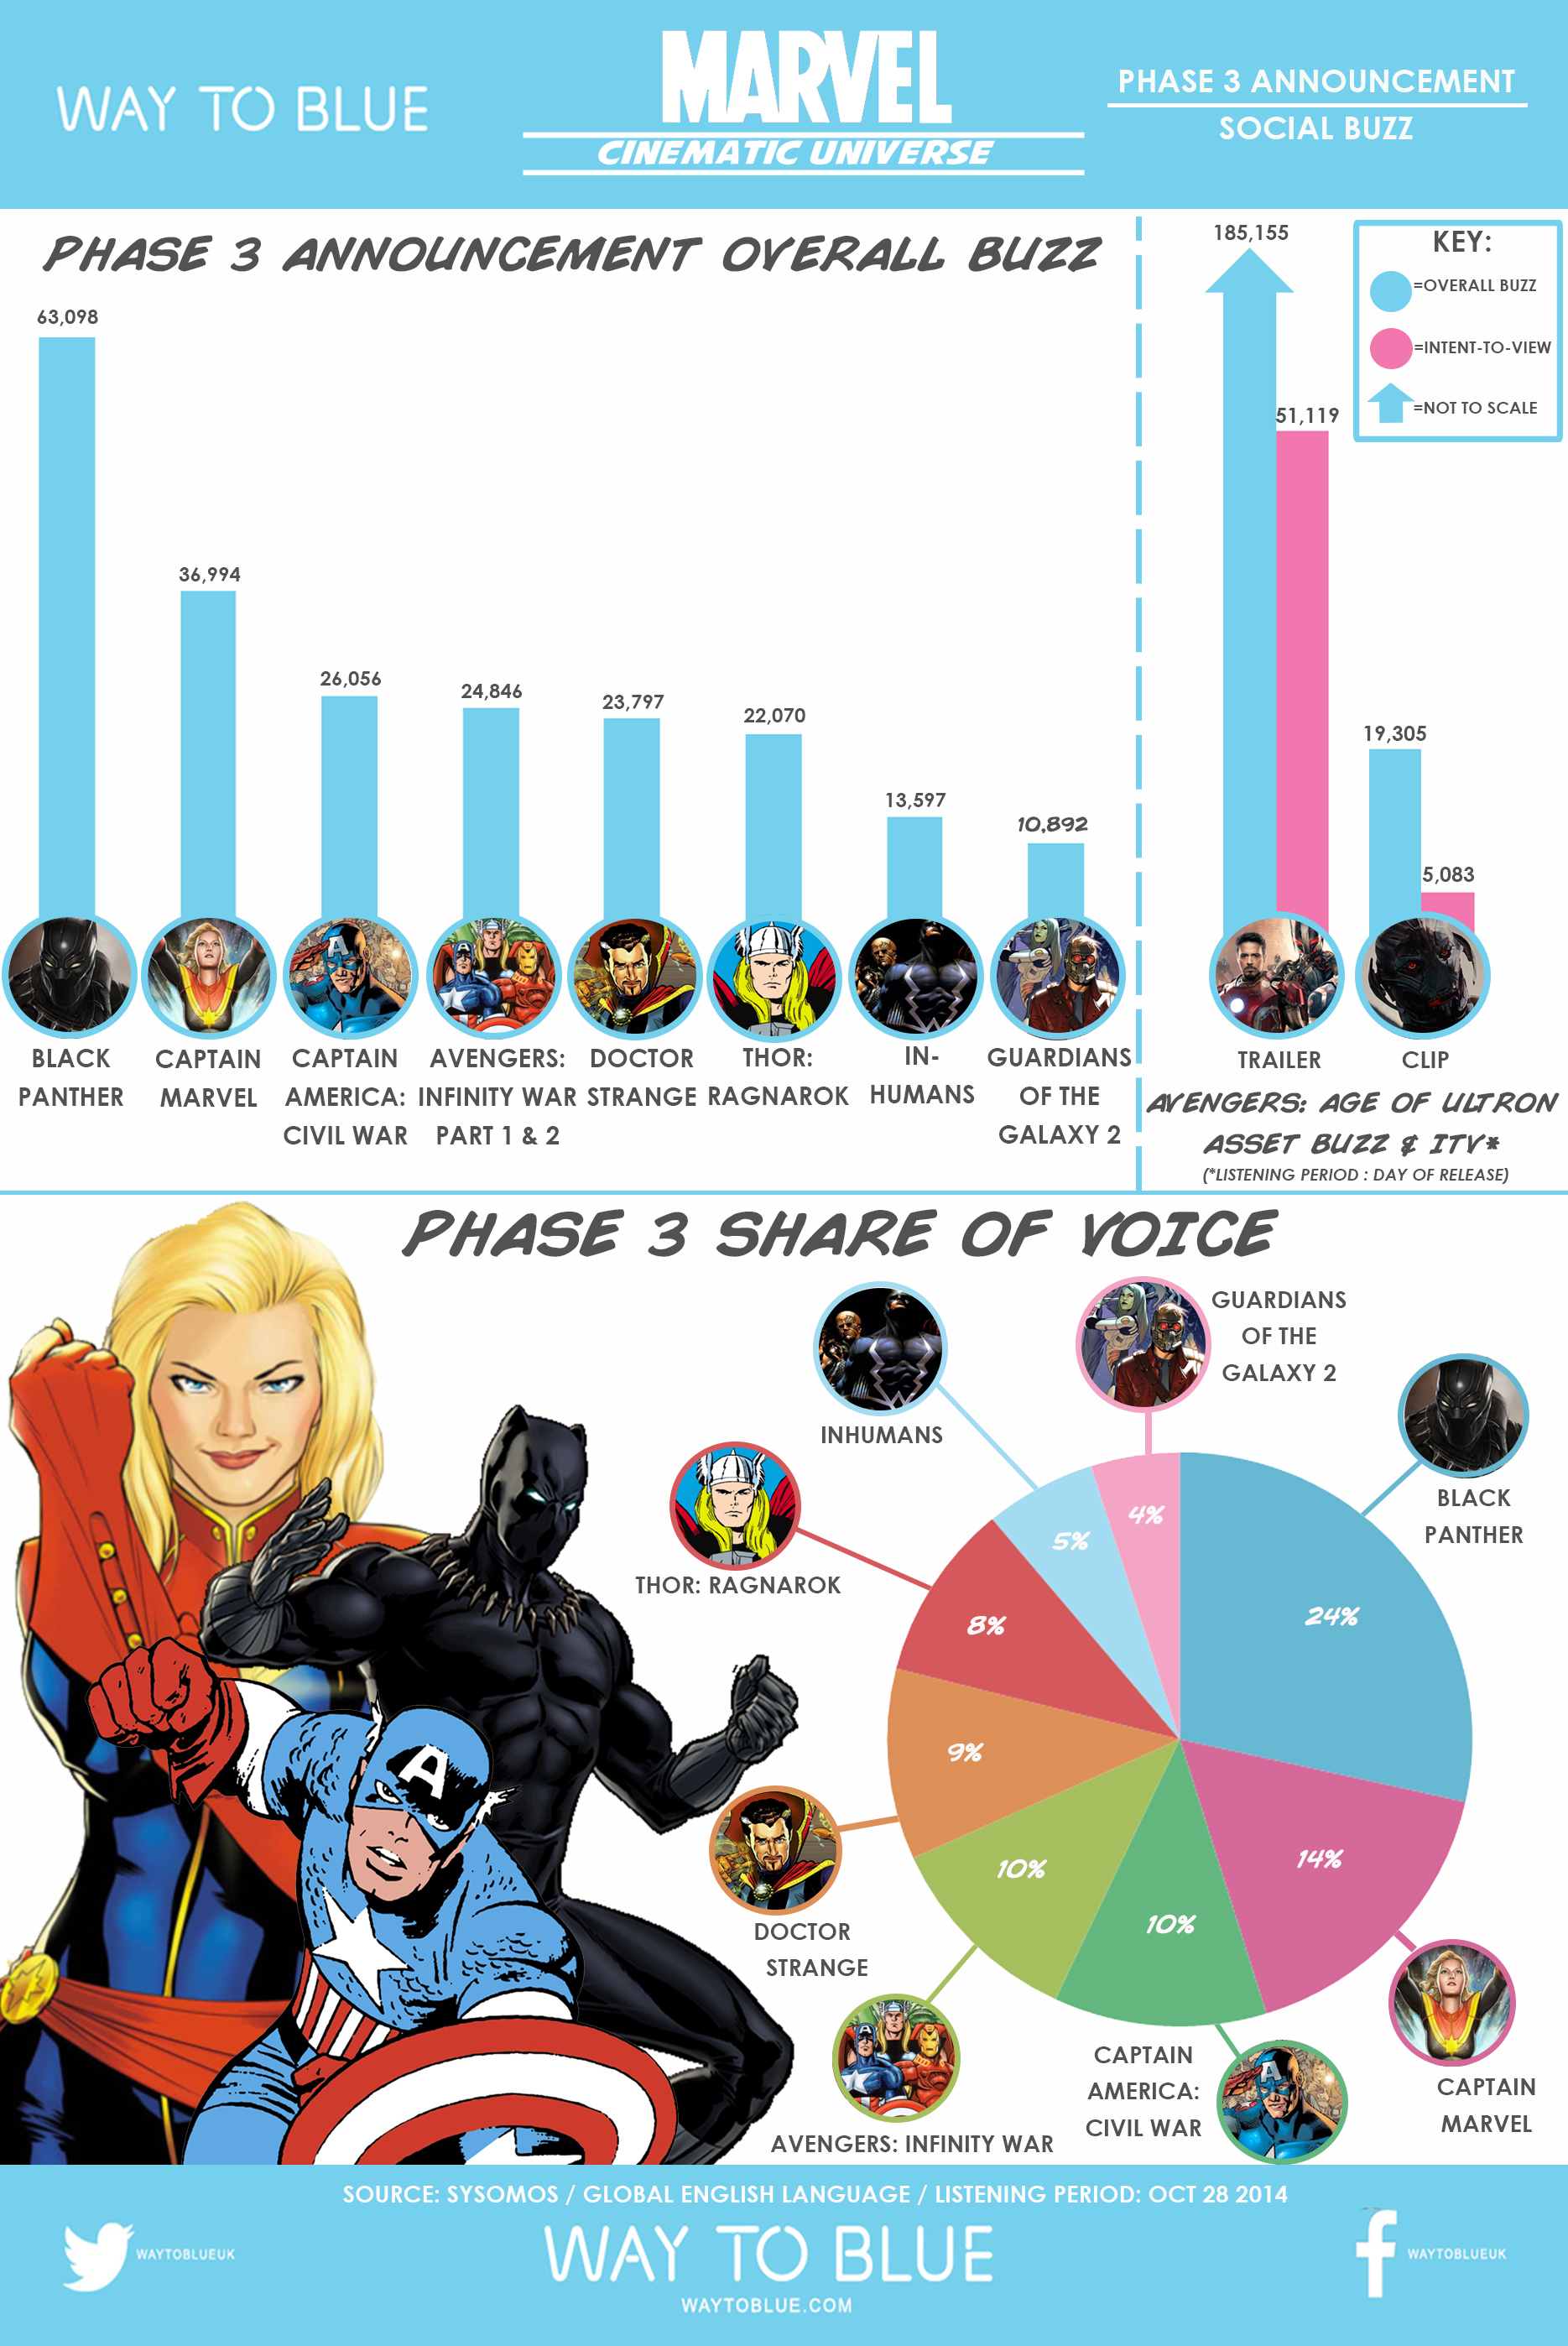 Social Media Reactions to Marvel Phase 3 Announcement